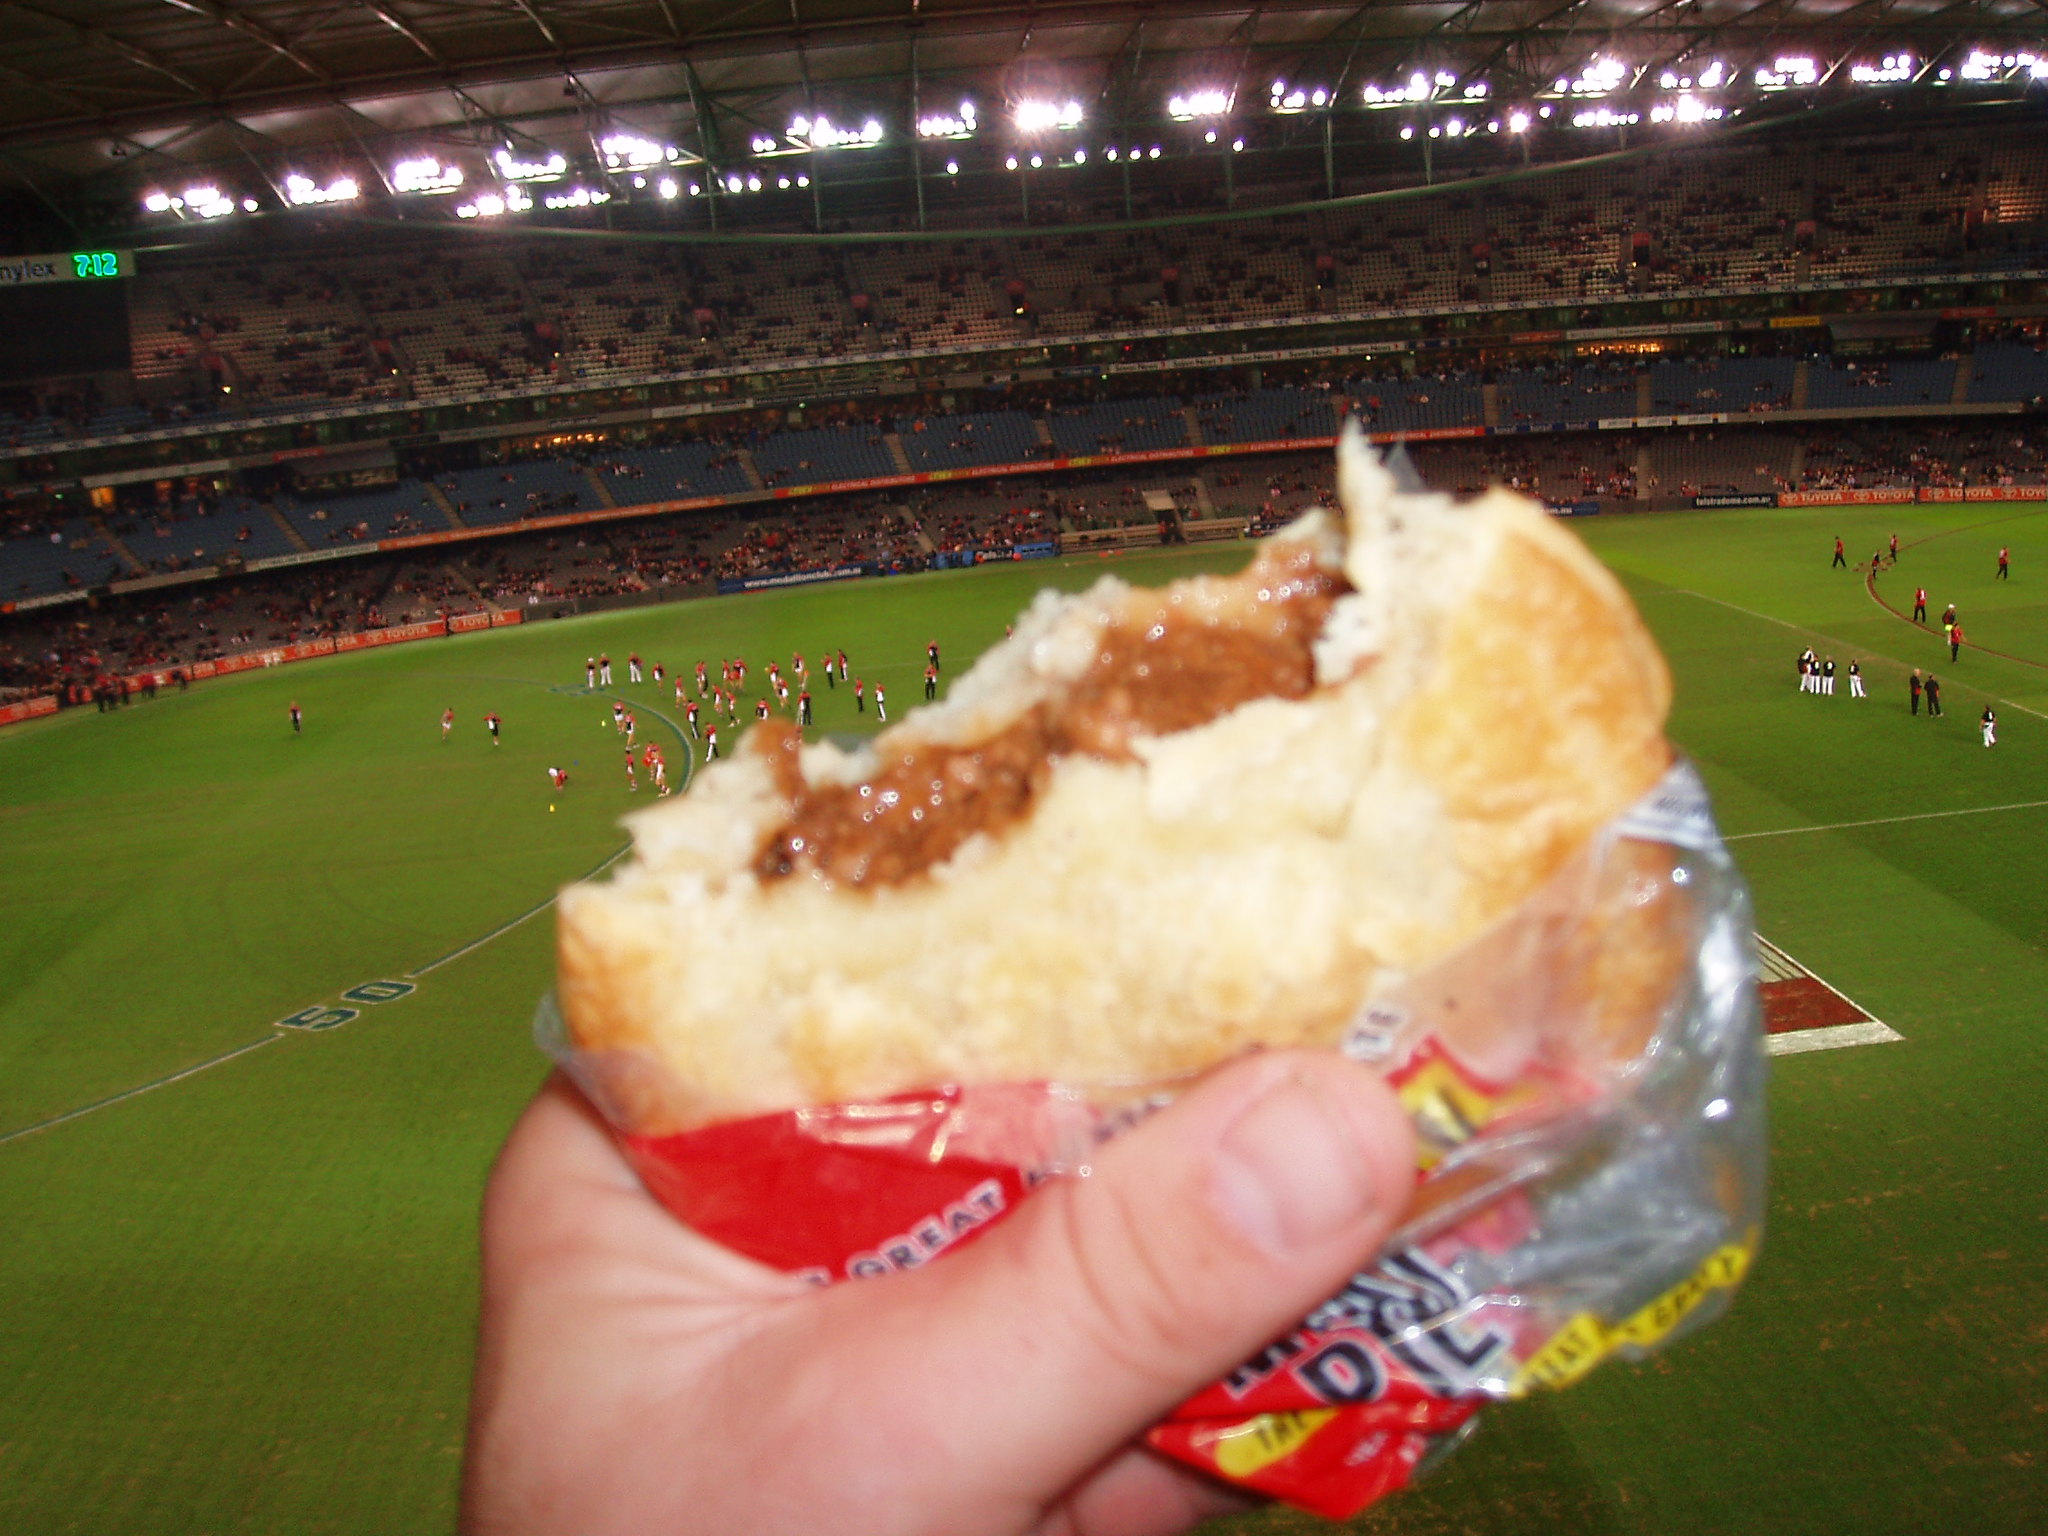 A hand holds a meat pie in a sports stadium